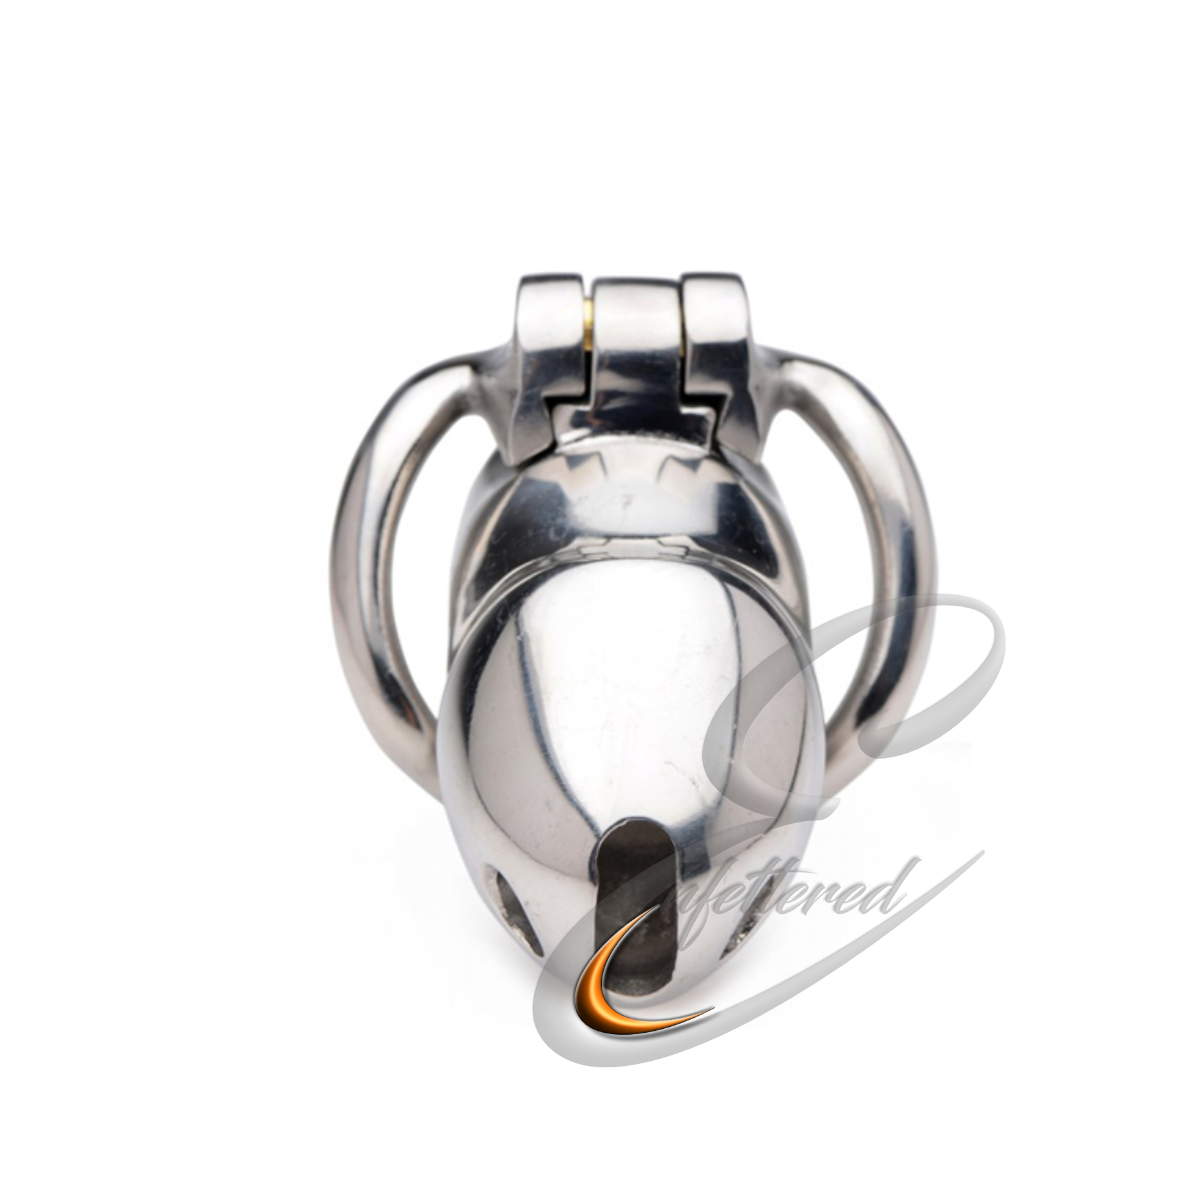 Enfettered Rikers Locking Chastity Cage